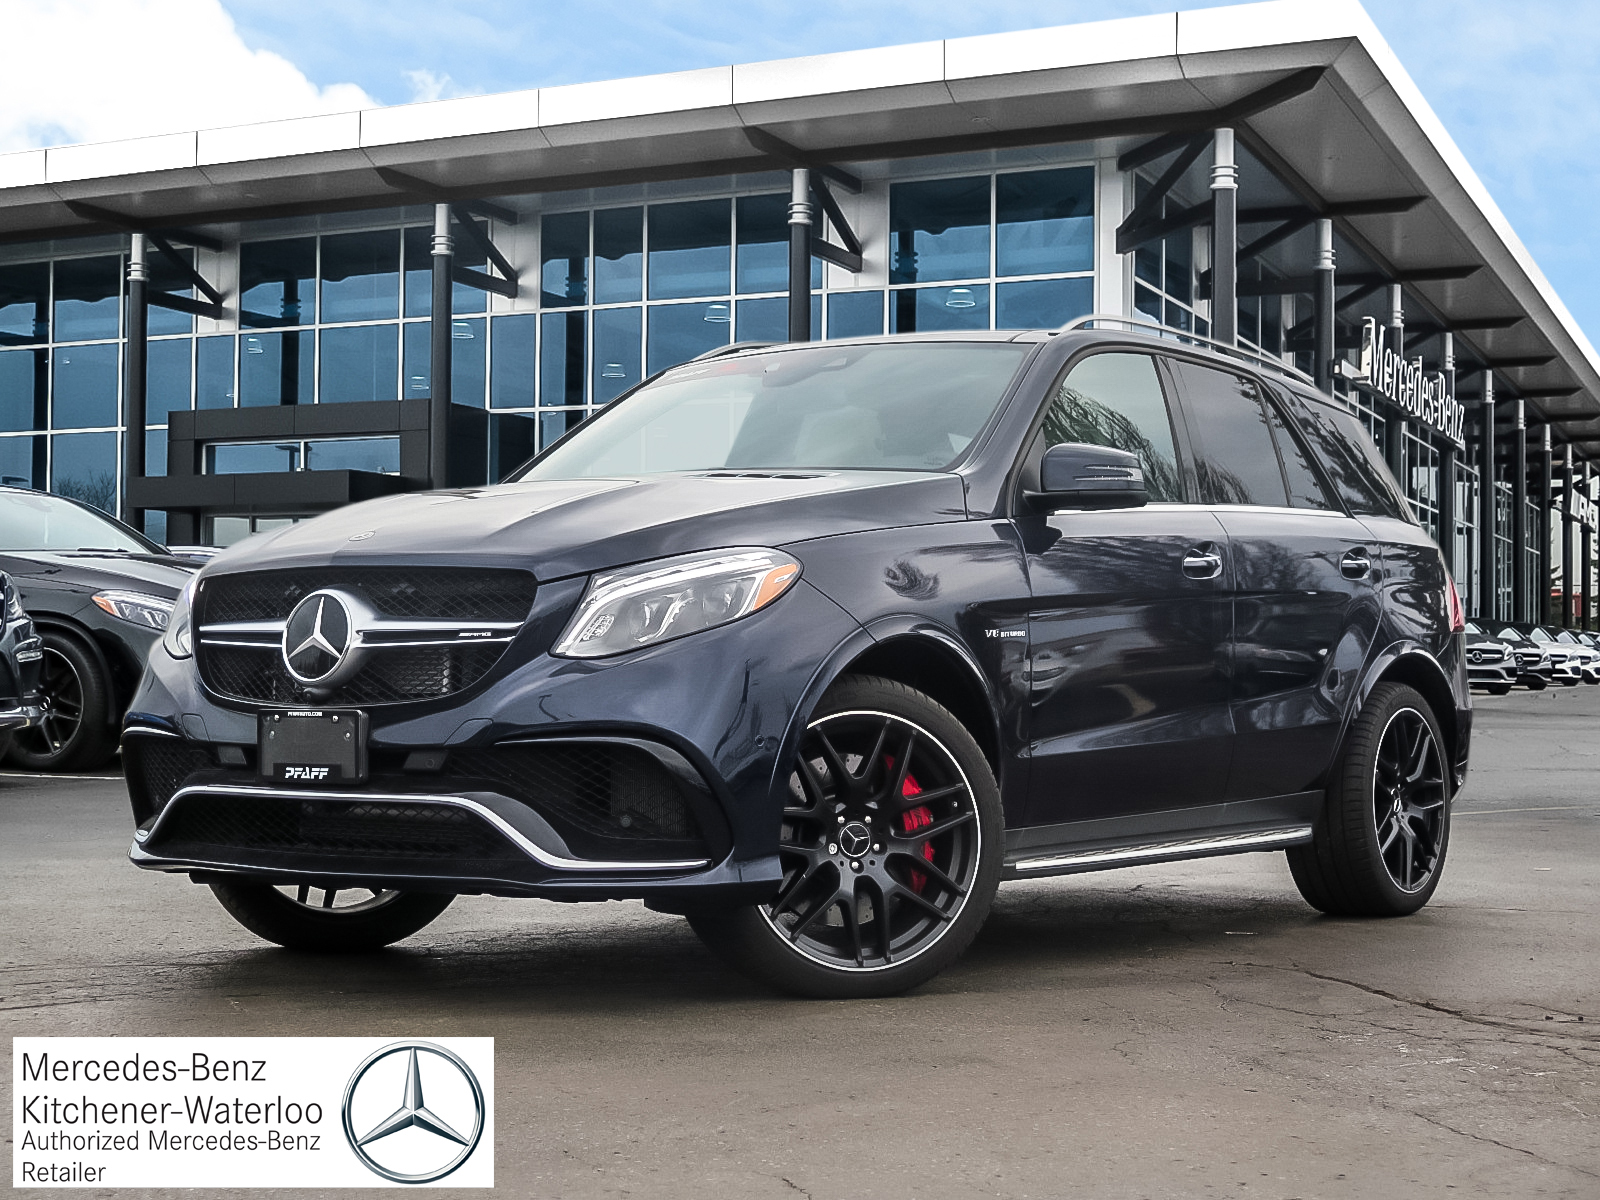 Certified Pre-Owned 2018 Mercedes-Benz GLE63 AMG S 4MATIC SUV